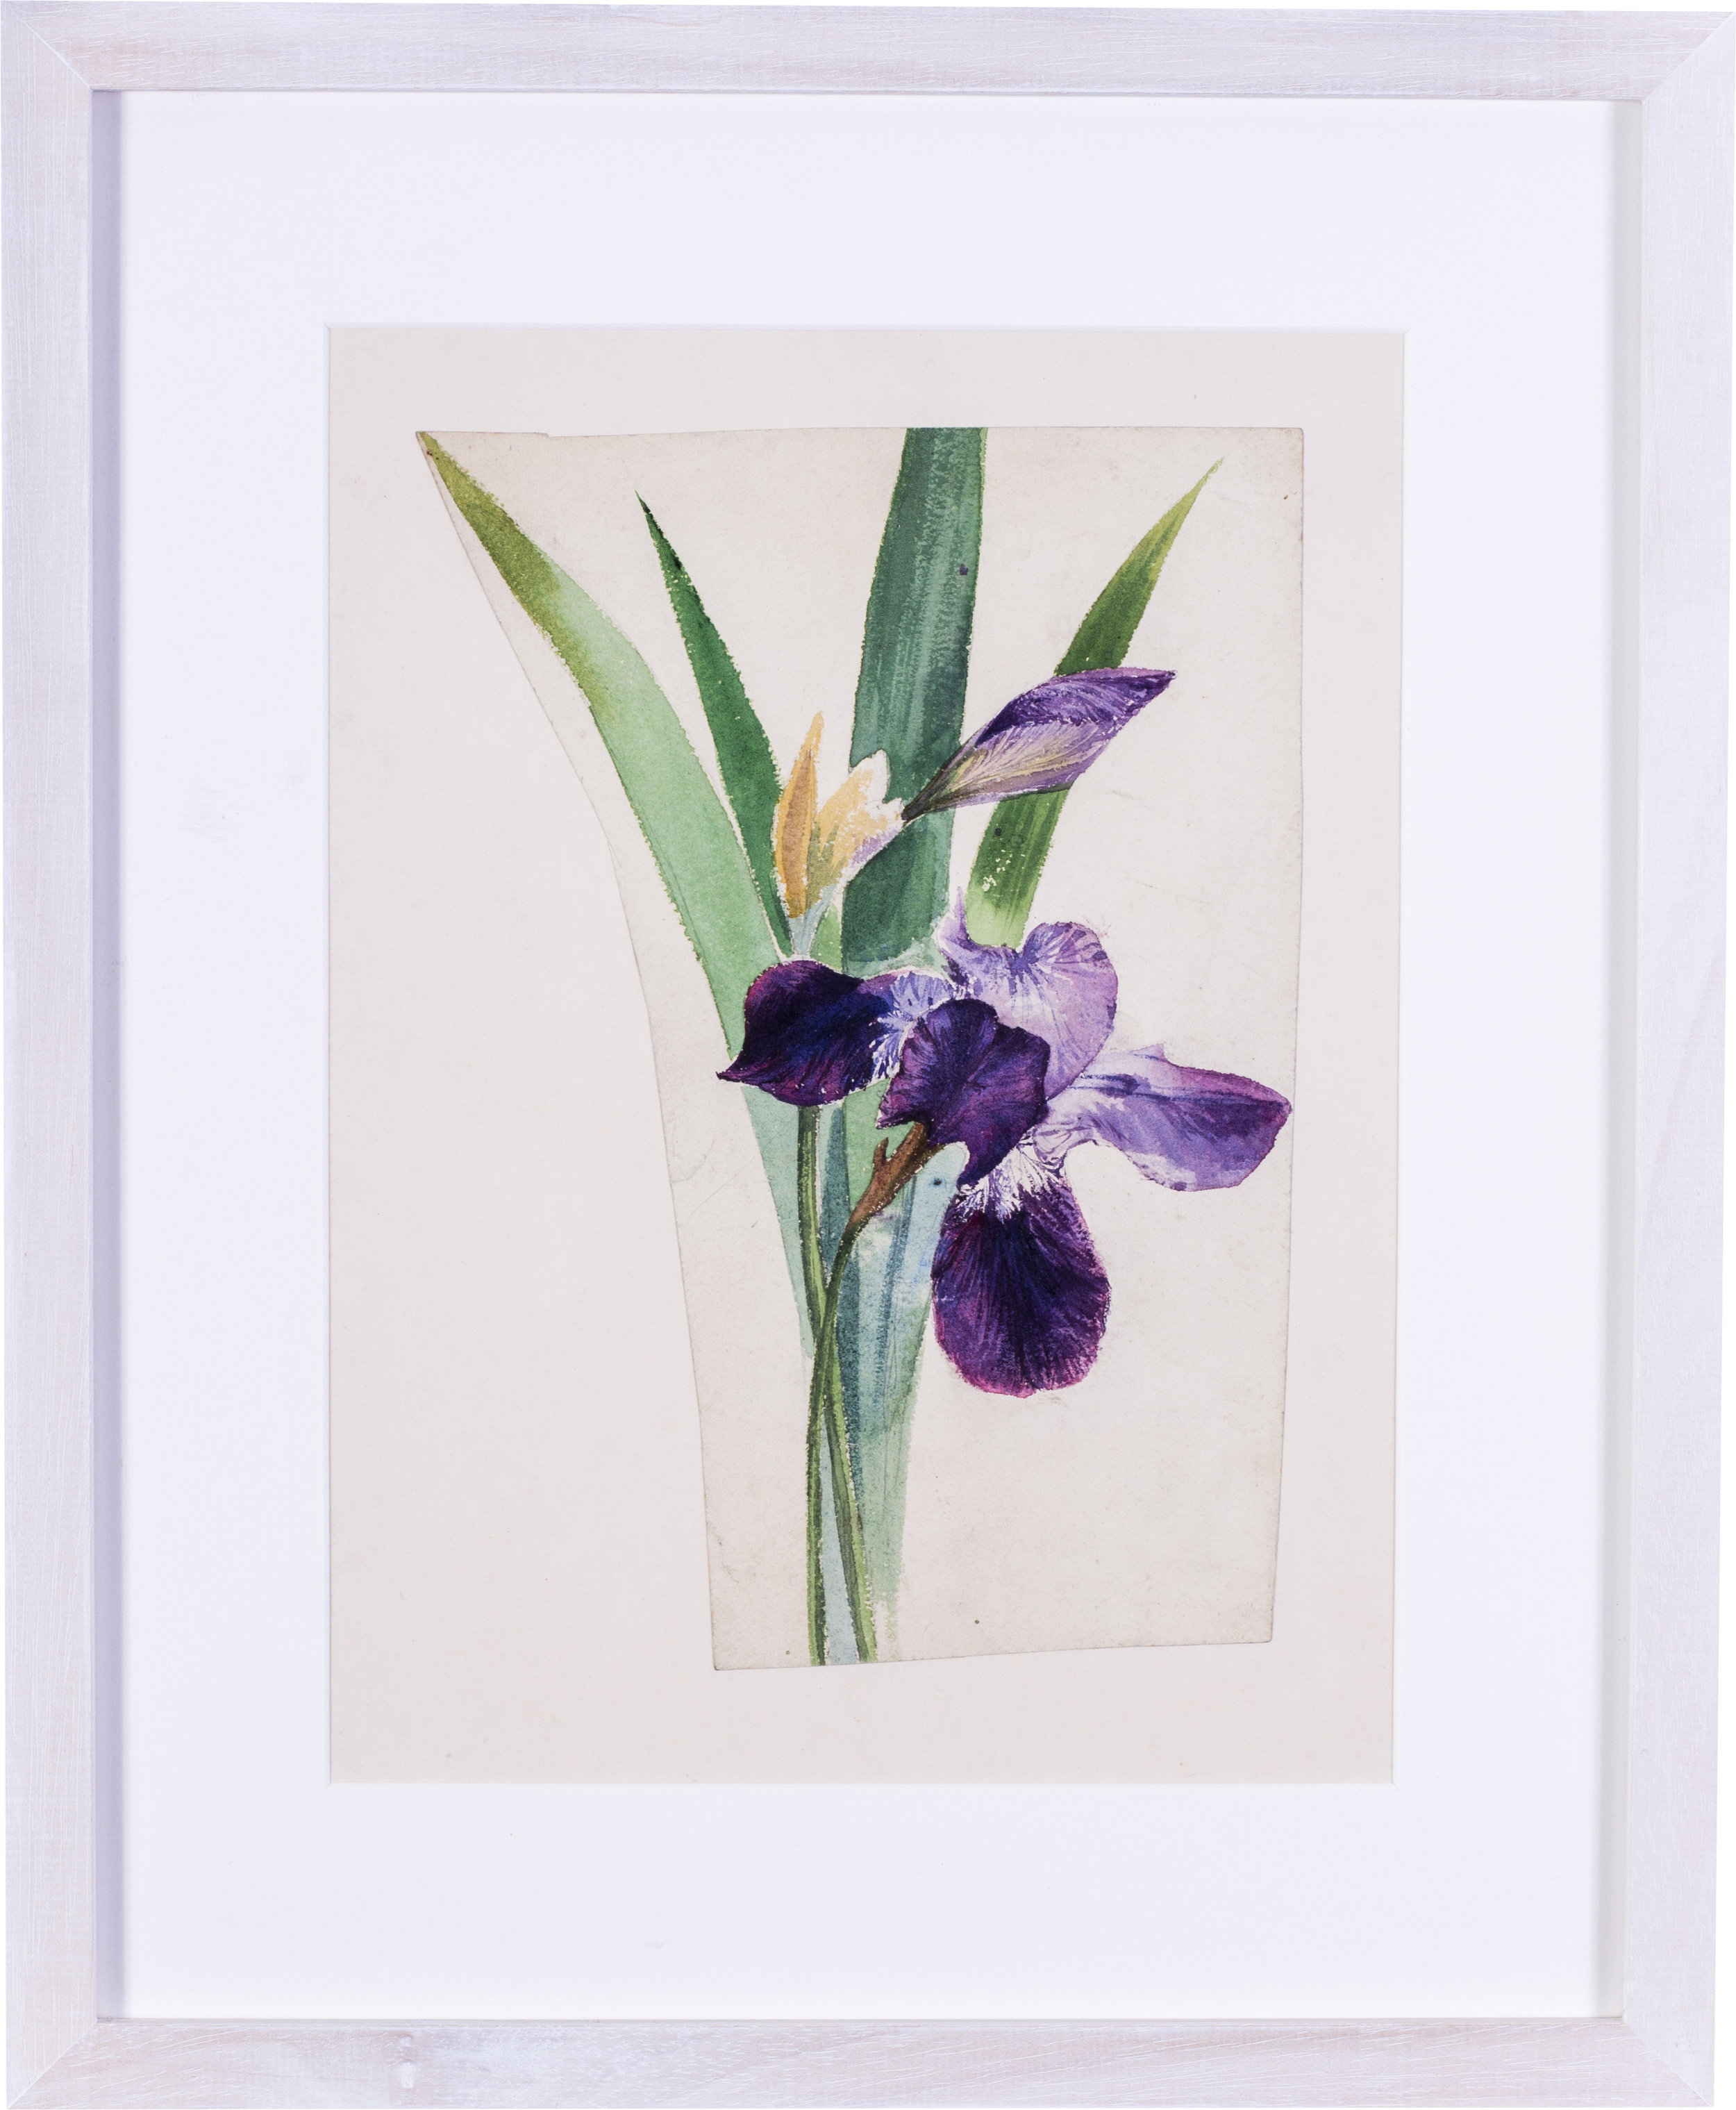 Irises    watercolour on paper stabilised on card  11 x 8 in. (28 x 20.3 cm.) (an irregular cut of paper)  Provenance: The Clayton-Stamm Collection.  Dominic Winter, Cirencester, 8thNovember 2018, lot 464  £1,100